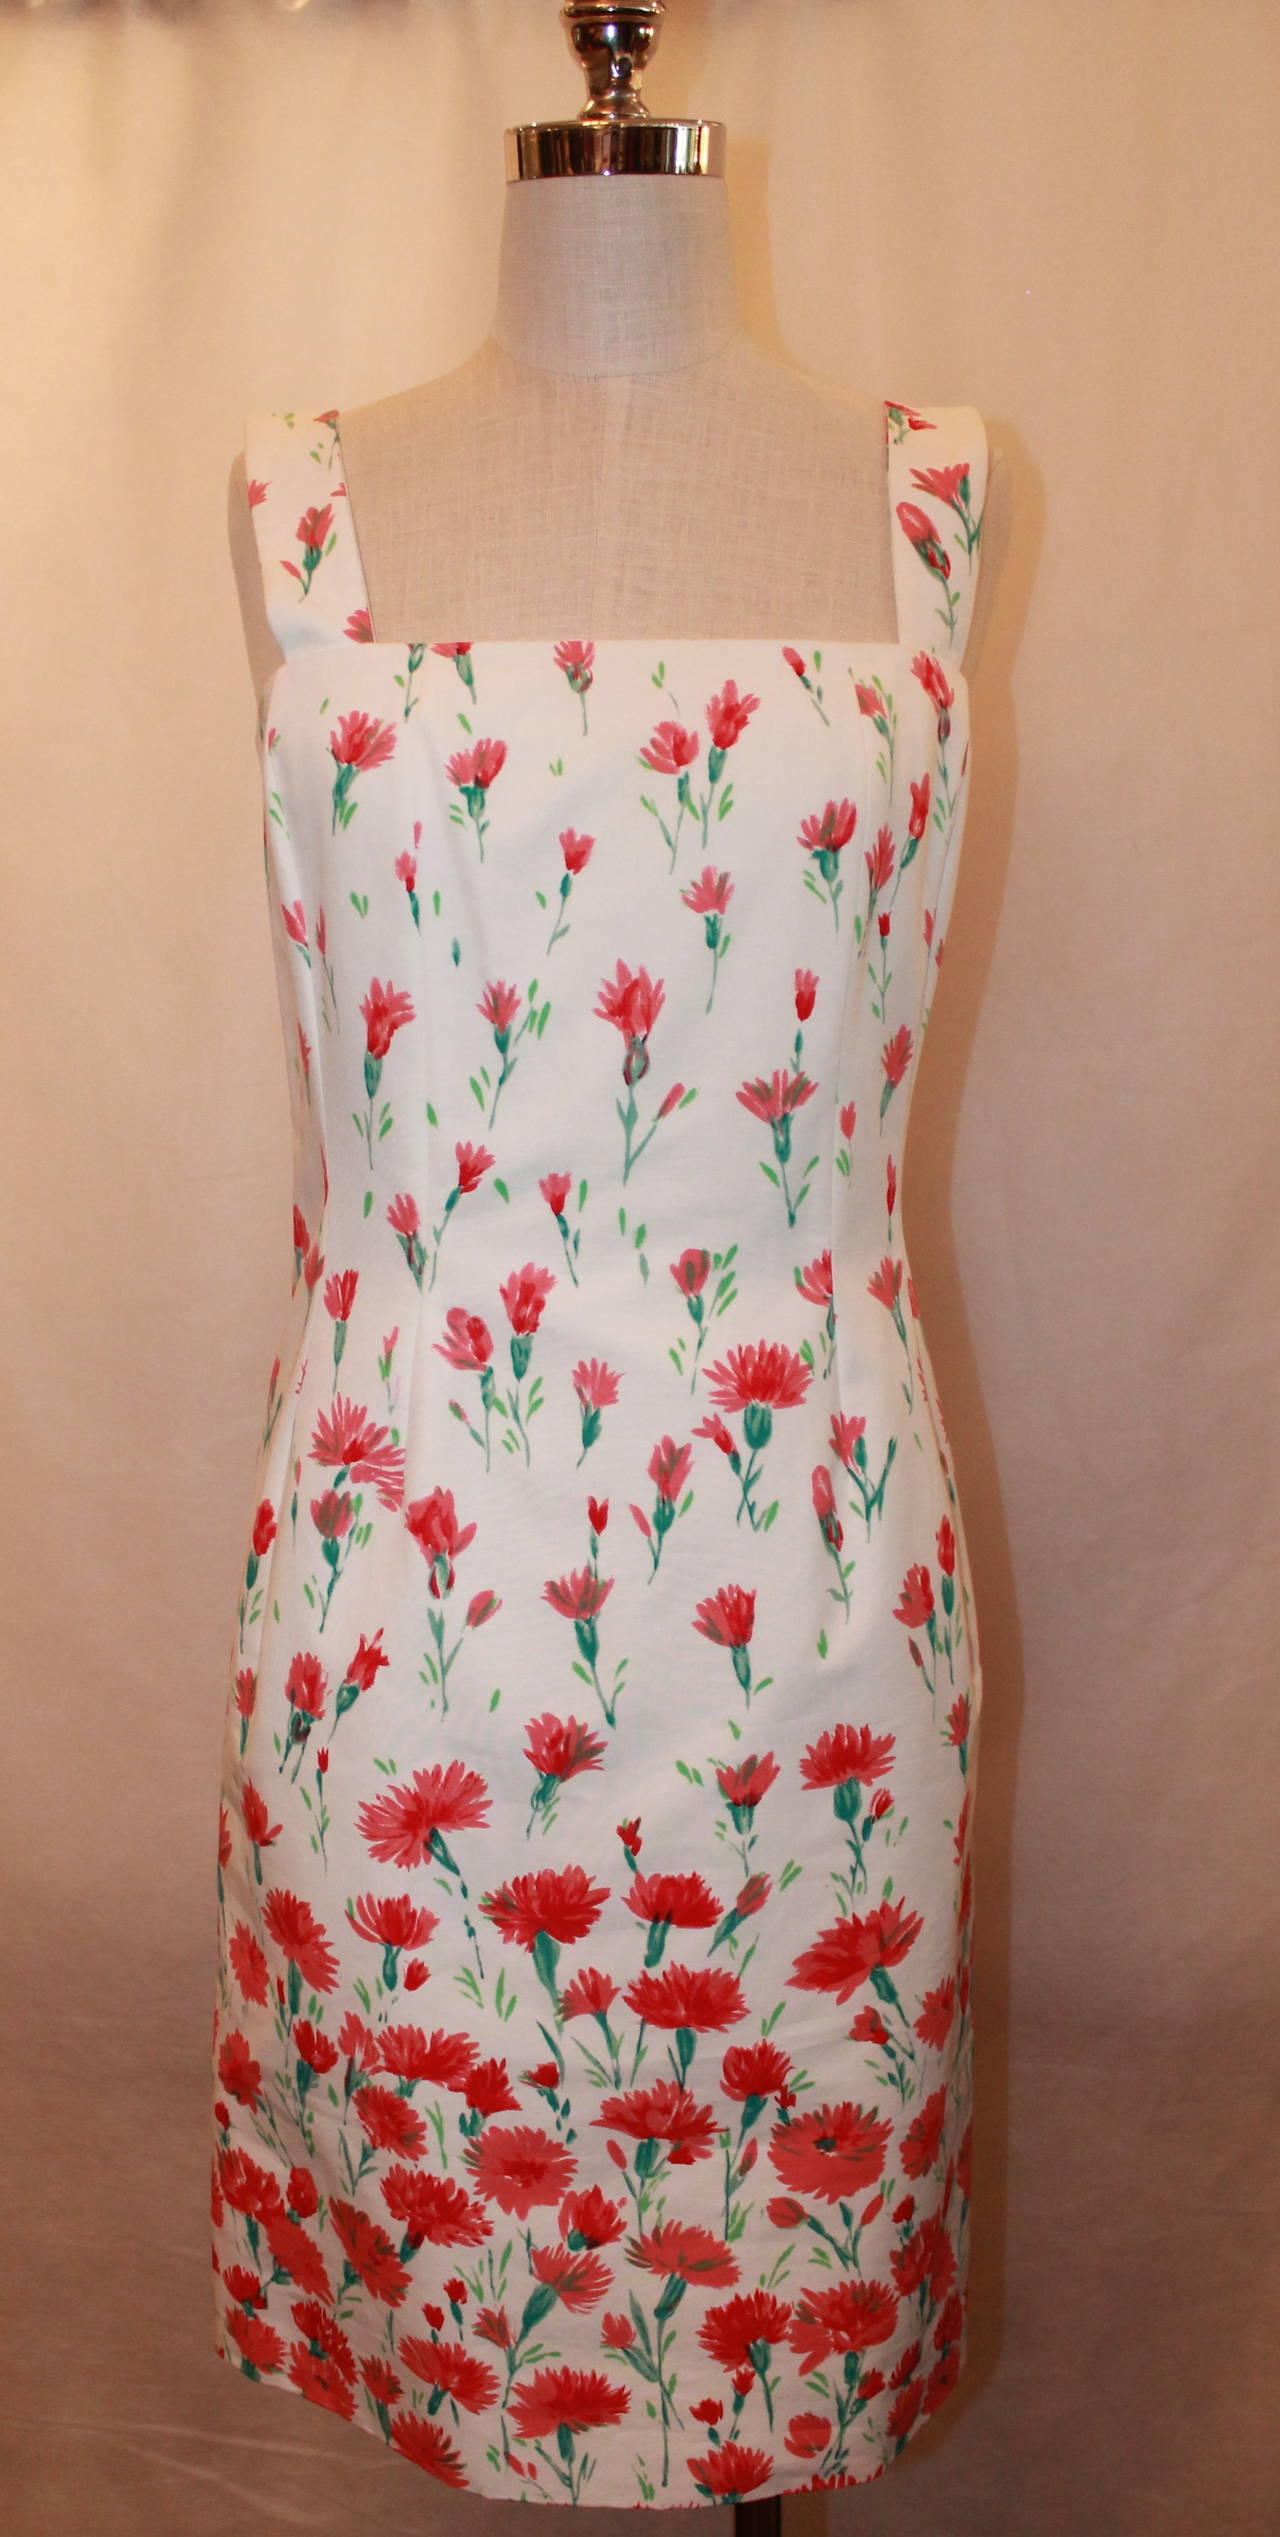 Oscar de la Renta White & Red Floral Print Cotton Dress - 6. This dress is in excellent condition and is around knee-length.   Measurements: Bust- 31